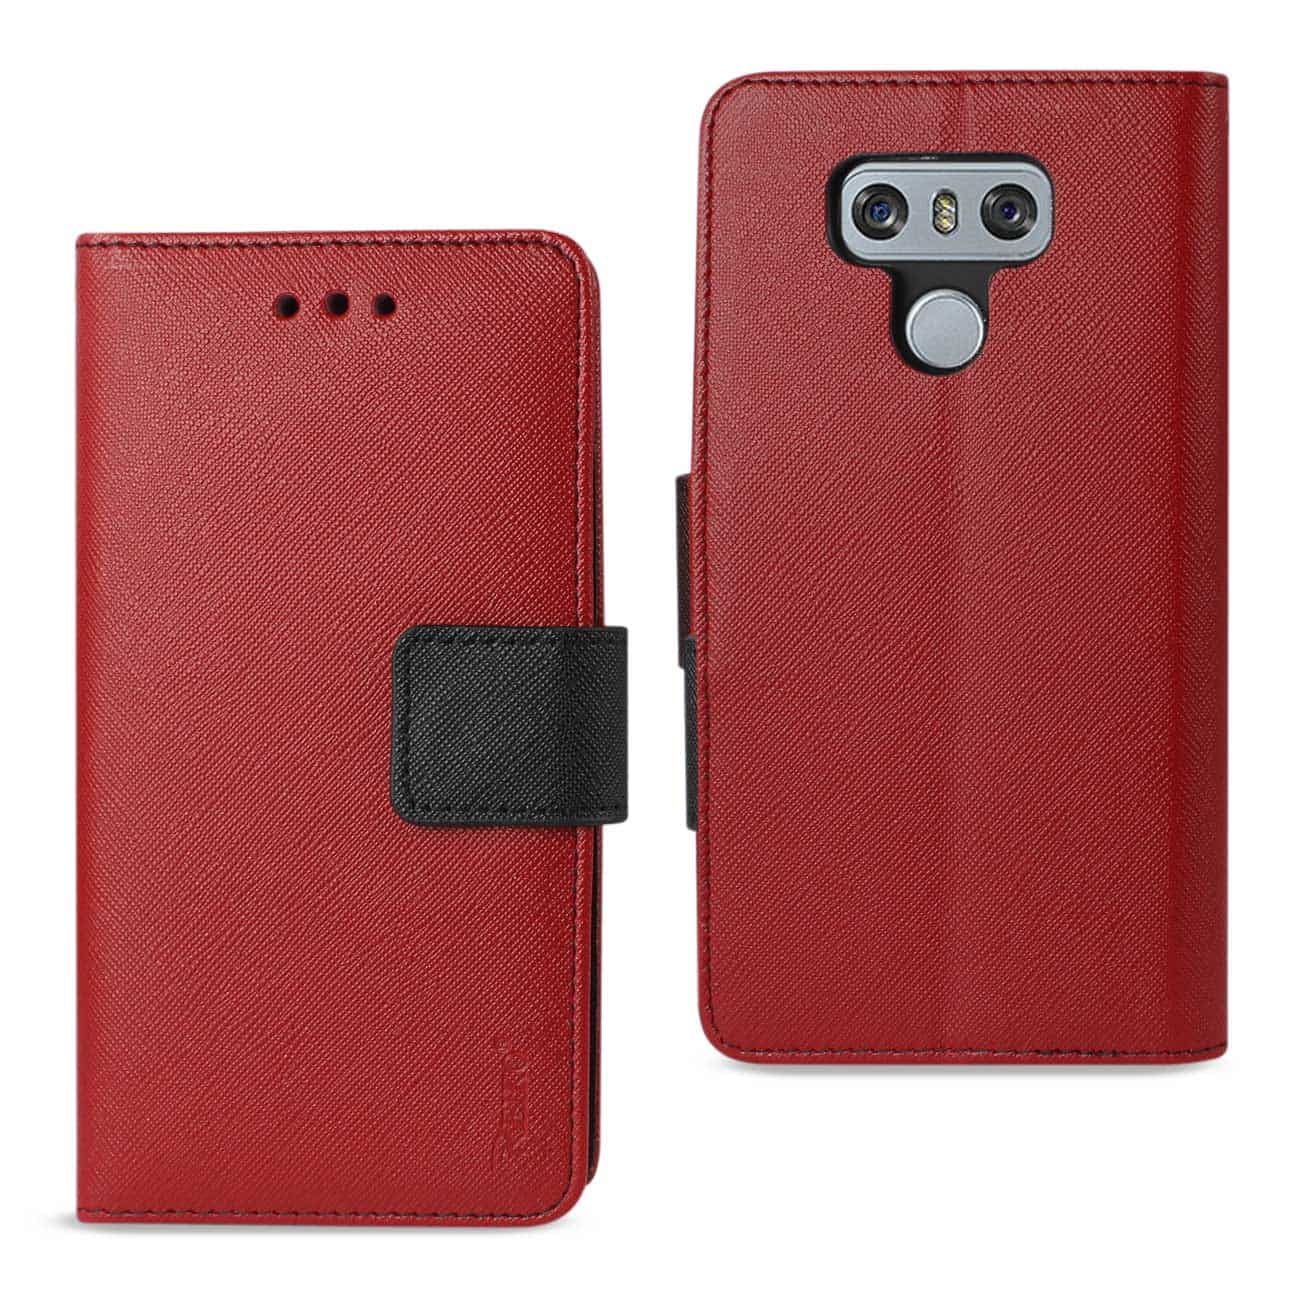 LG G6 3-IN-1 WALLET CASE IN RED